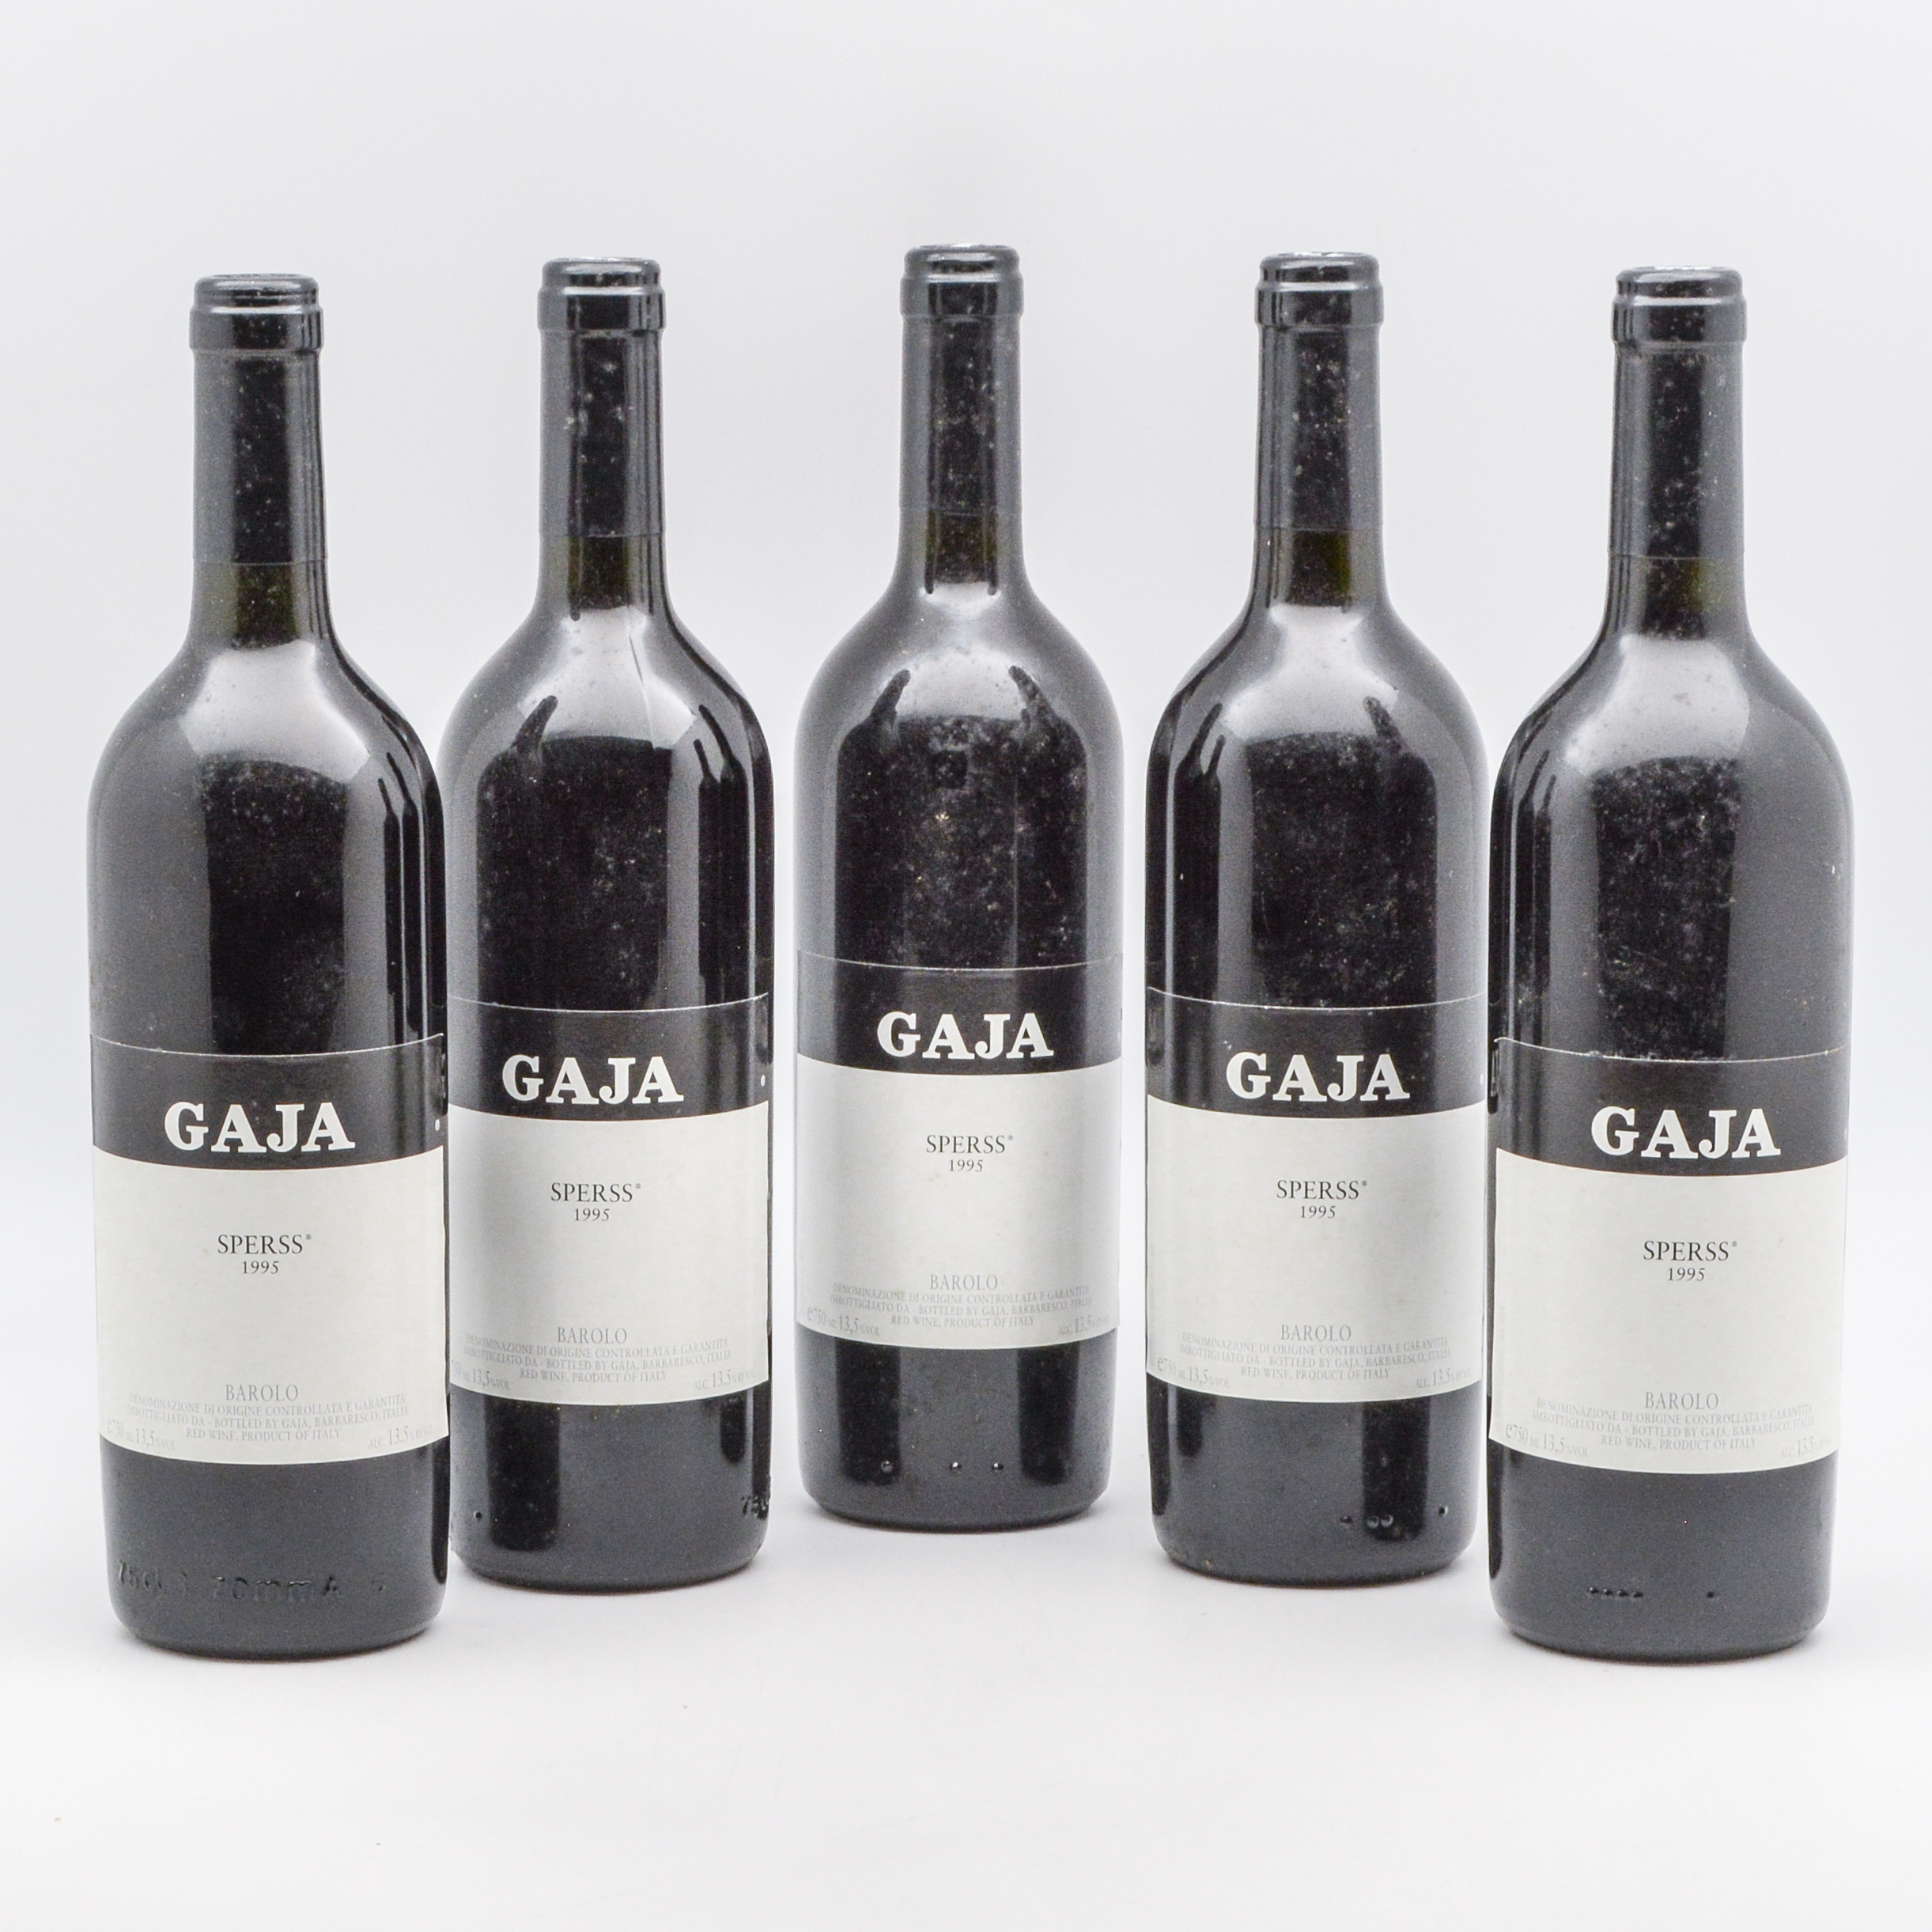 Gaja Sperss 1995, 5 bottles (Lot 1312, Estimate: $600-850)